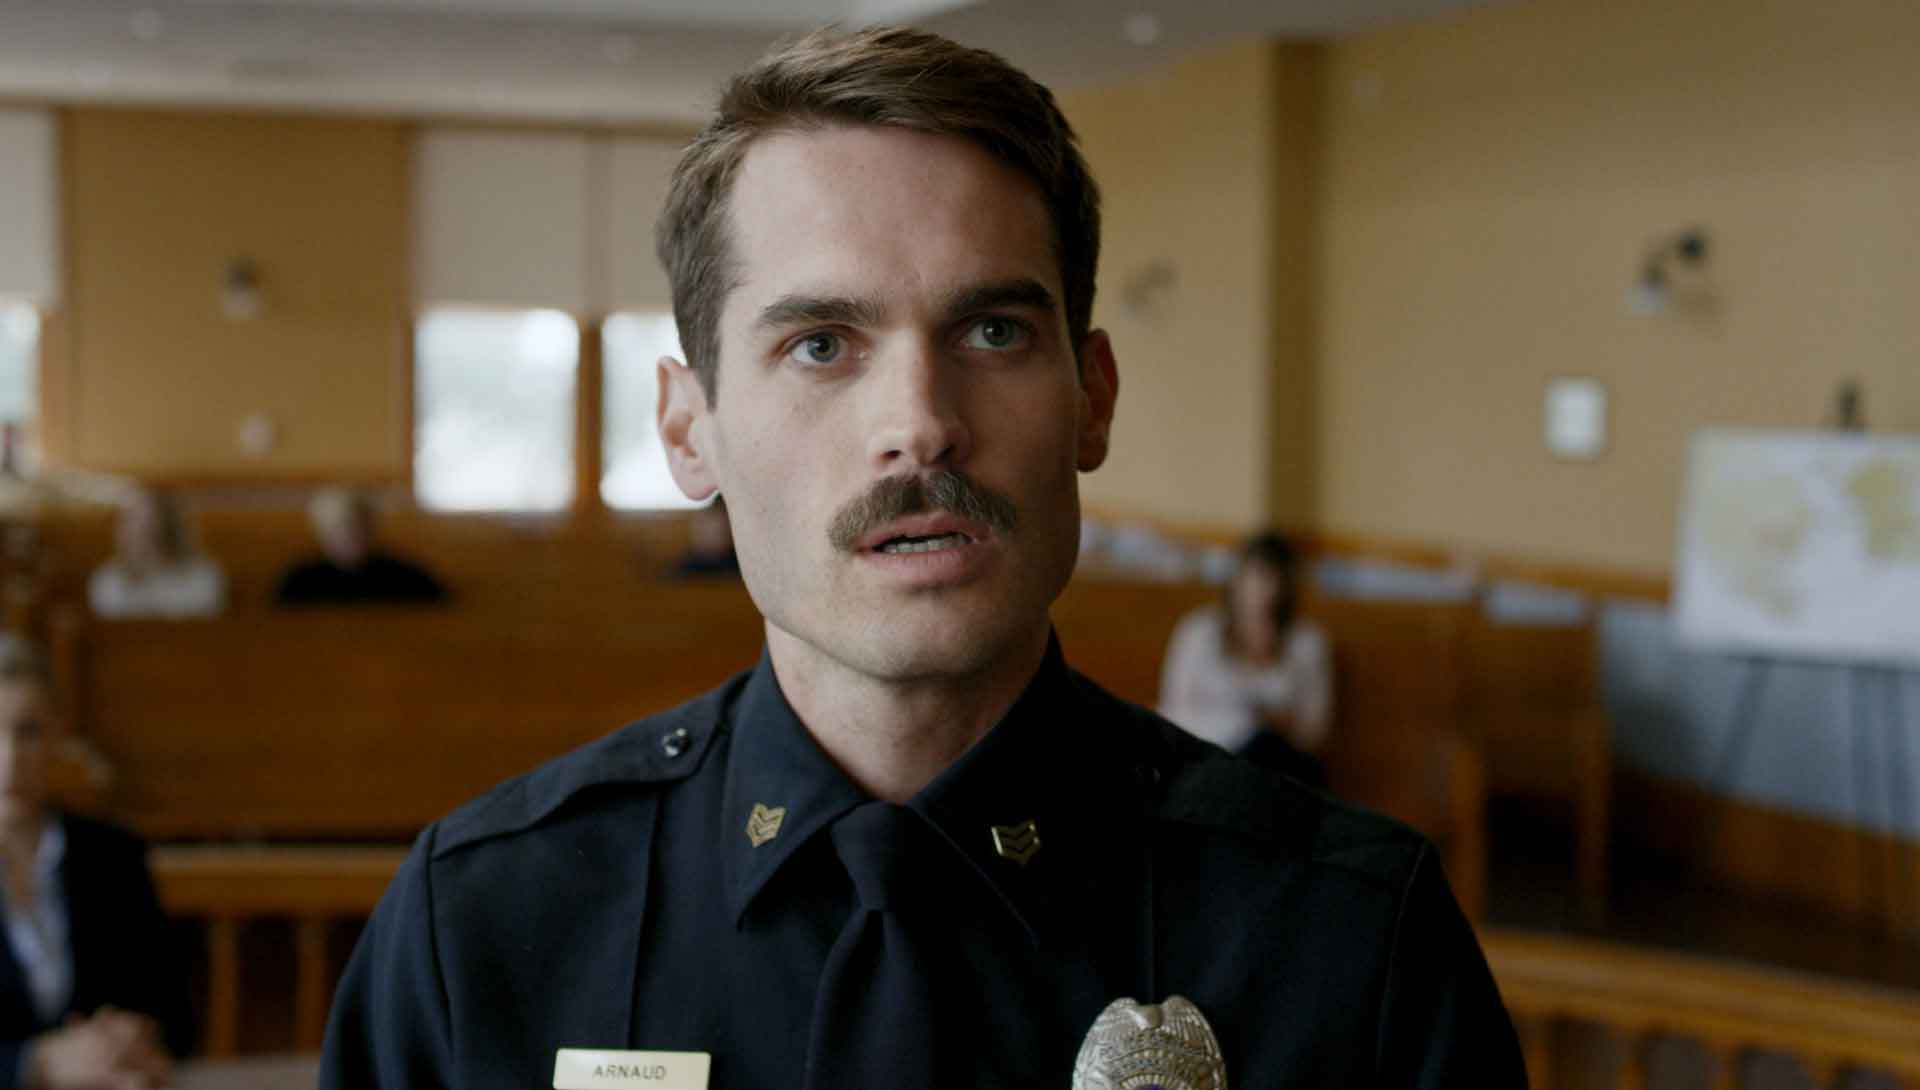 Thunder Road de Jim Cummings